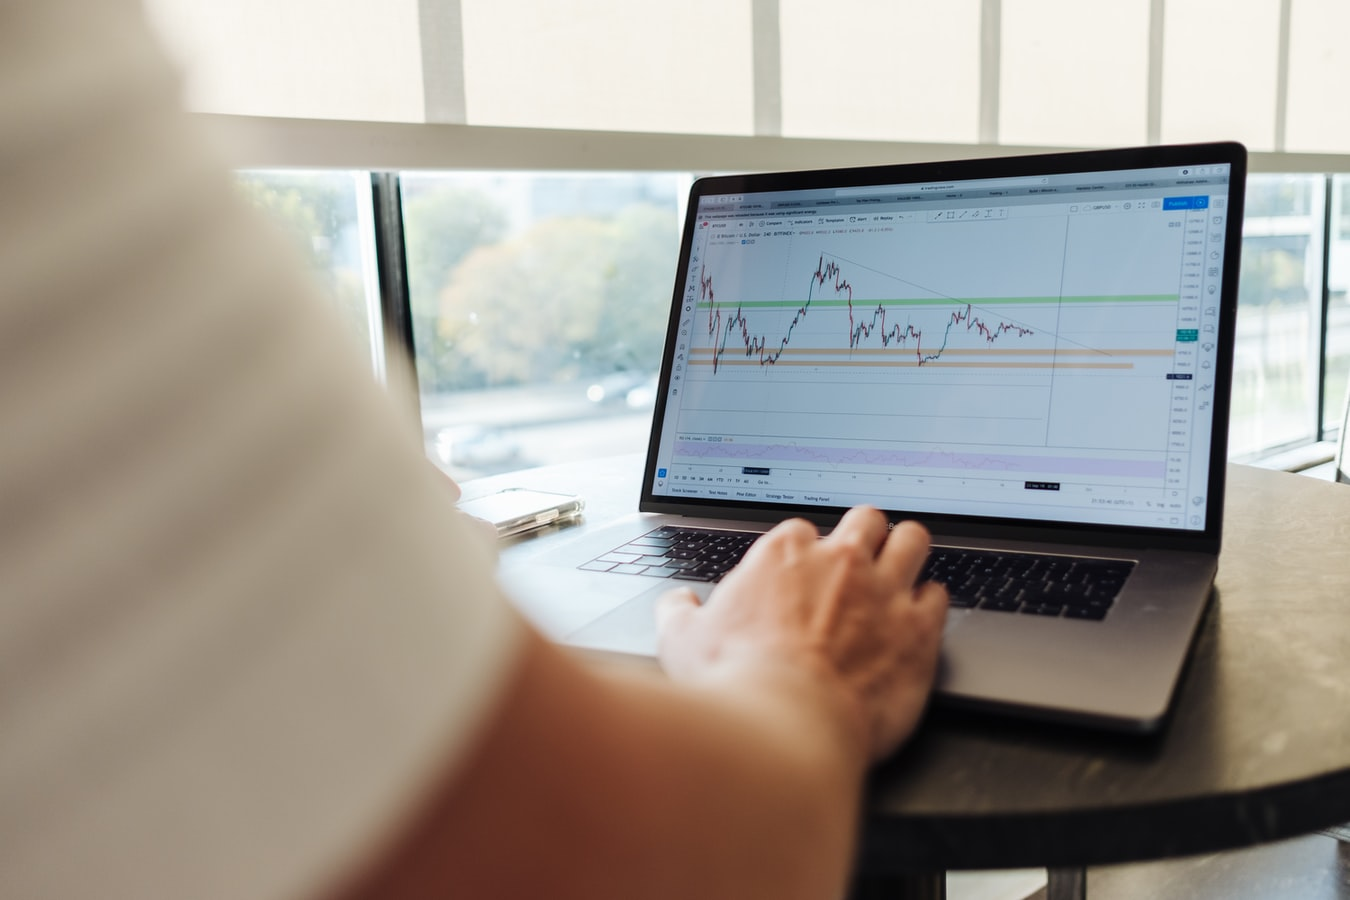 What are the most important reasons behind the popularity of the online trading concept